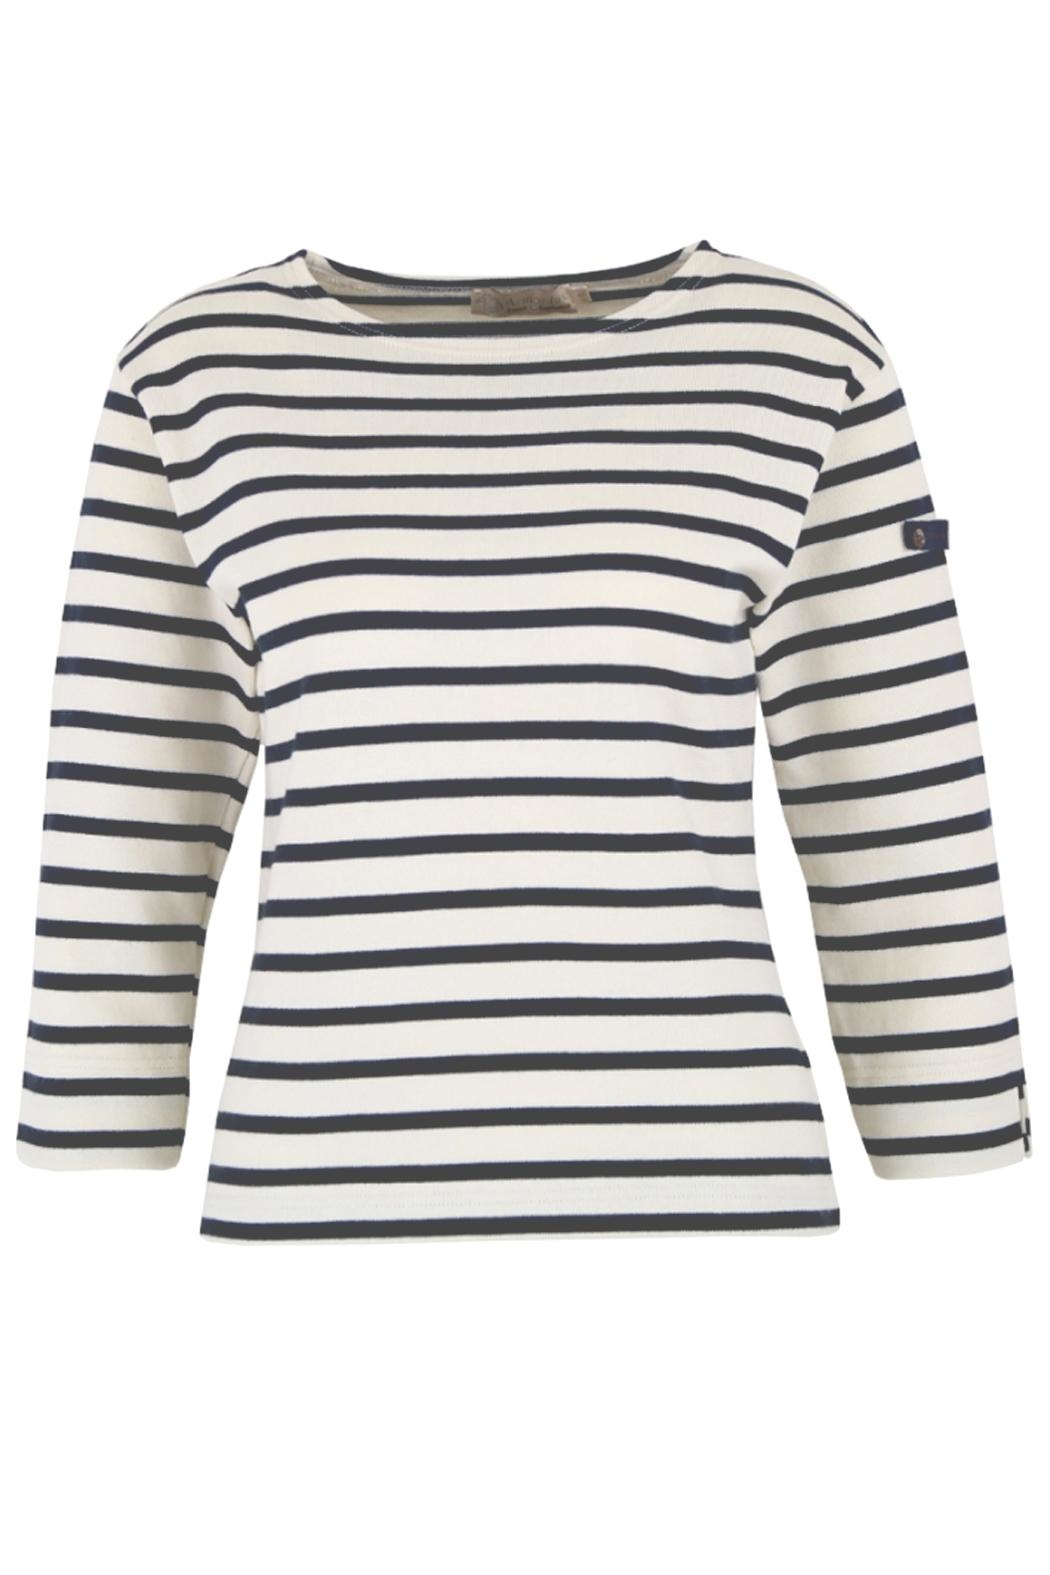 Armor Lux White & Navy Breton Shirt - Front Cropped Image